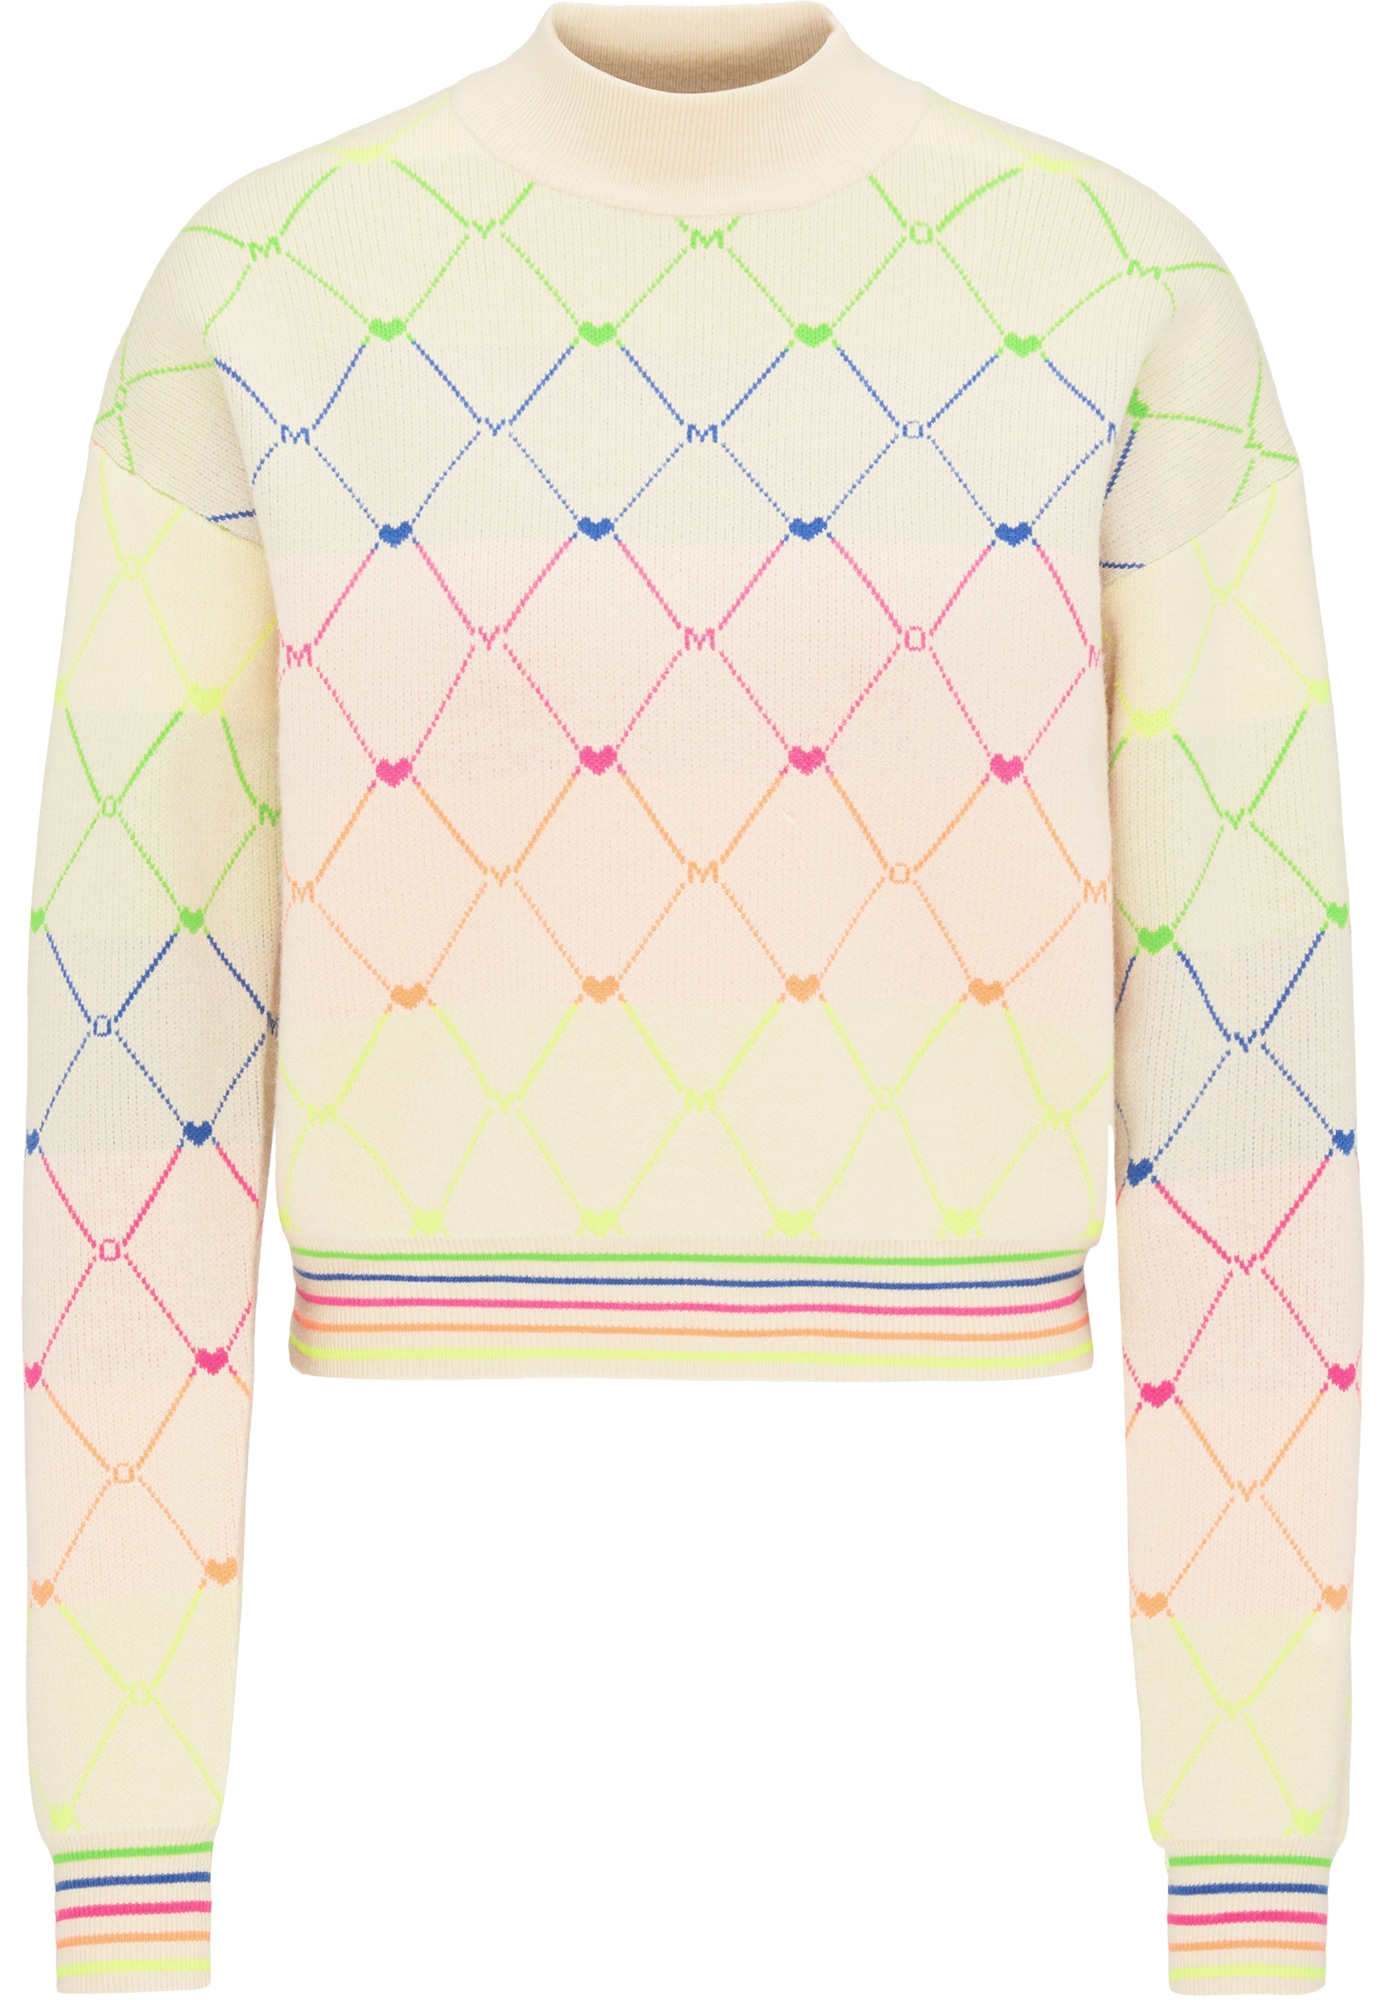 Pullover   Bekleidung > Pullover   MYMO